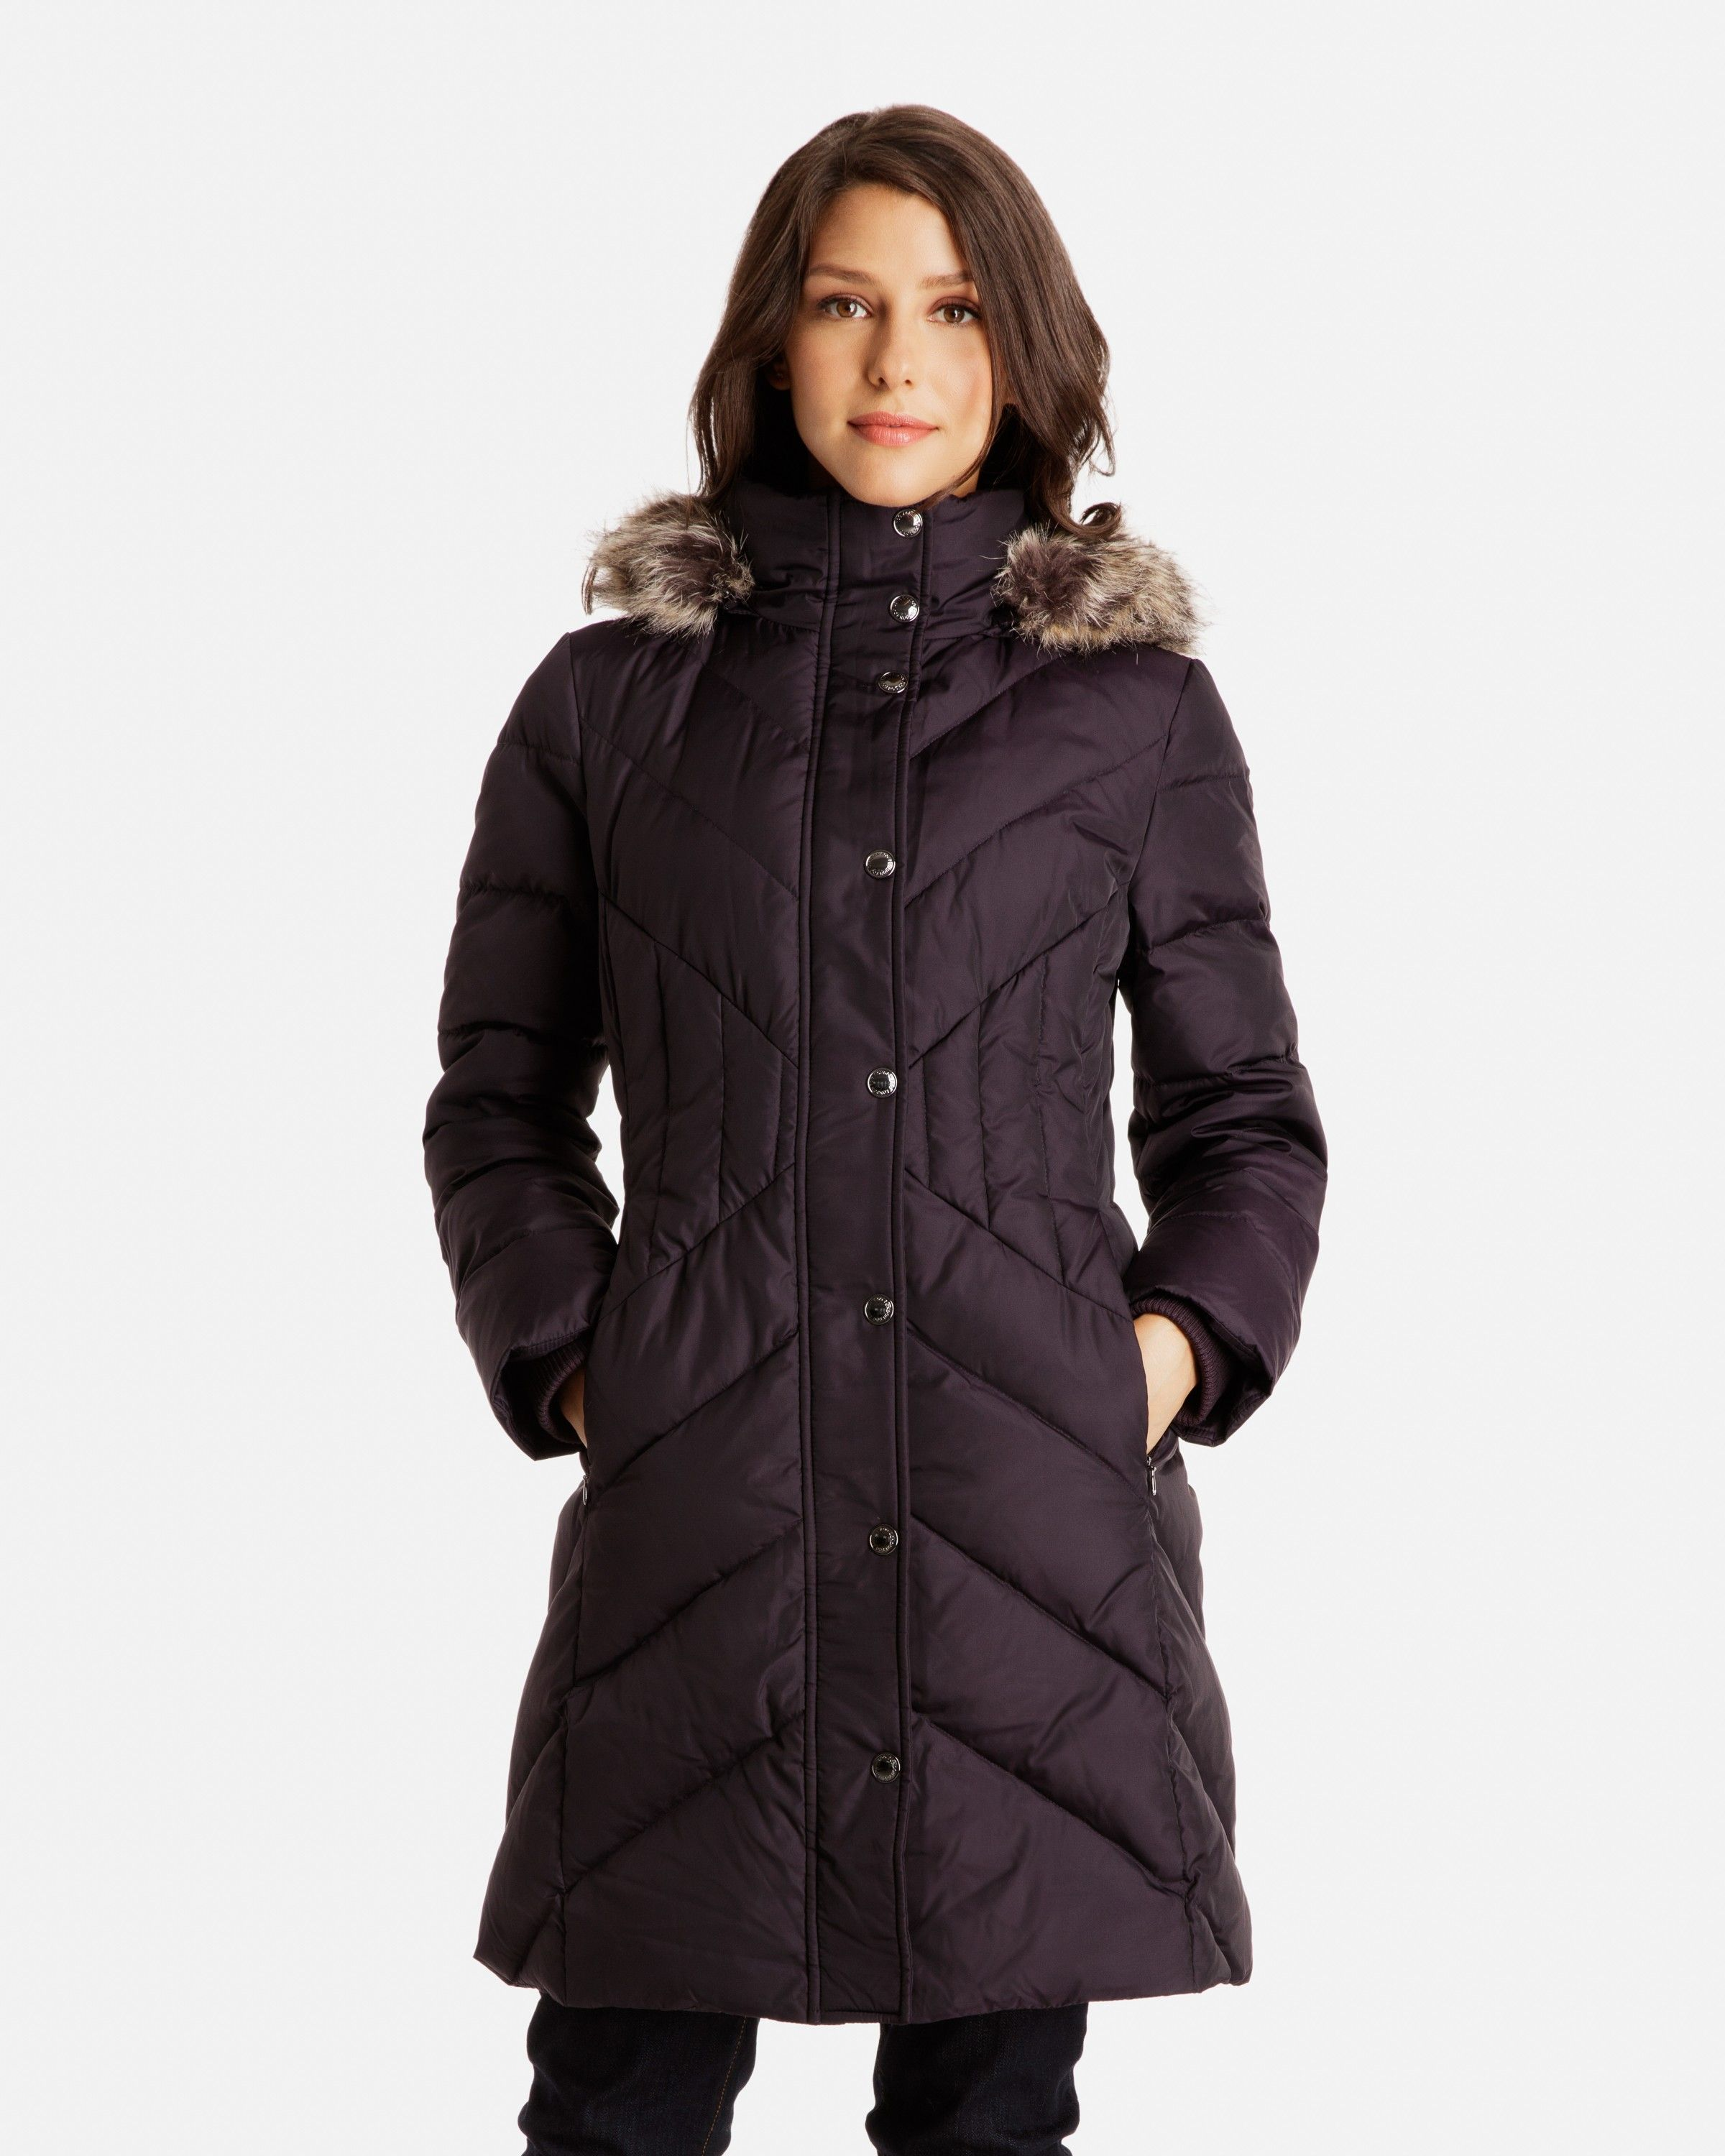 aa9e5bde1 Celine Chevron Quilted Down Coat for Women | London Fog -- This may ...